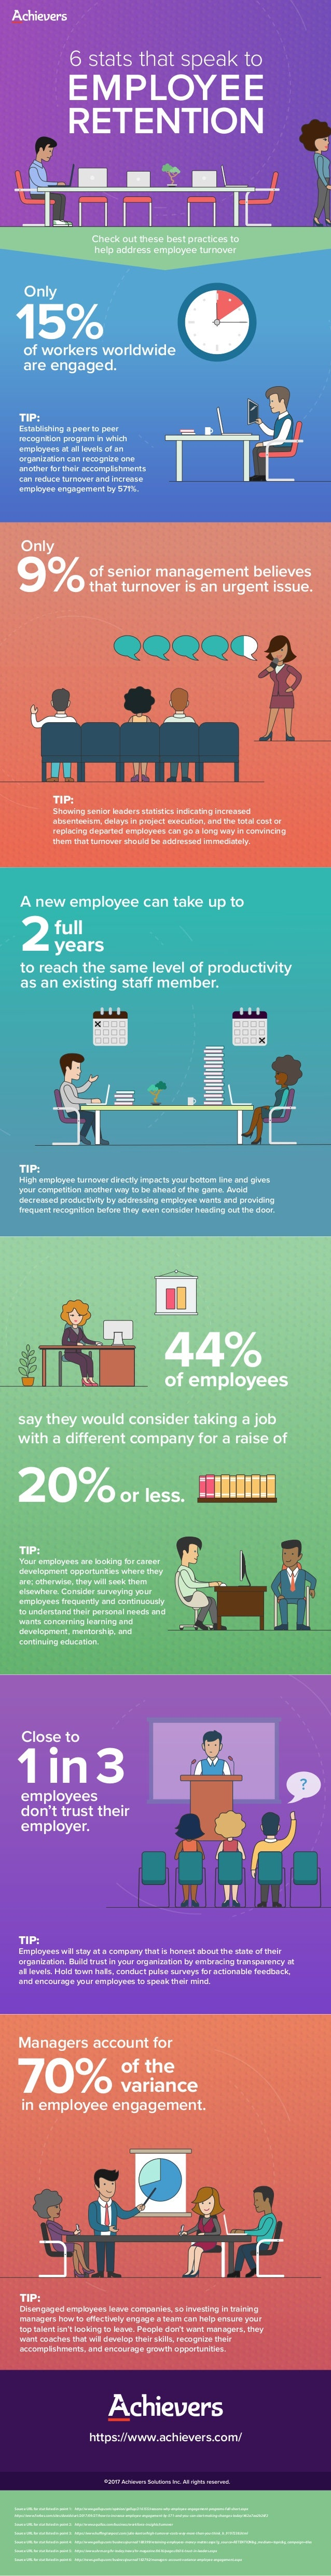 Source URL for stat listed in point 1: http://www.gallup.com/opinion/gallup/216155/reasons-why-employee-engagement-program...